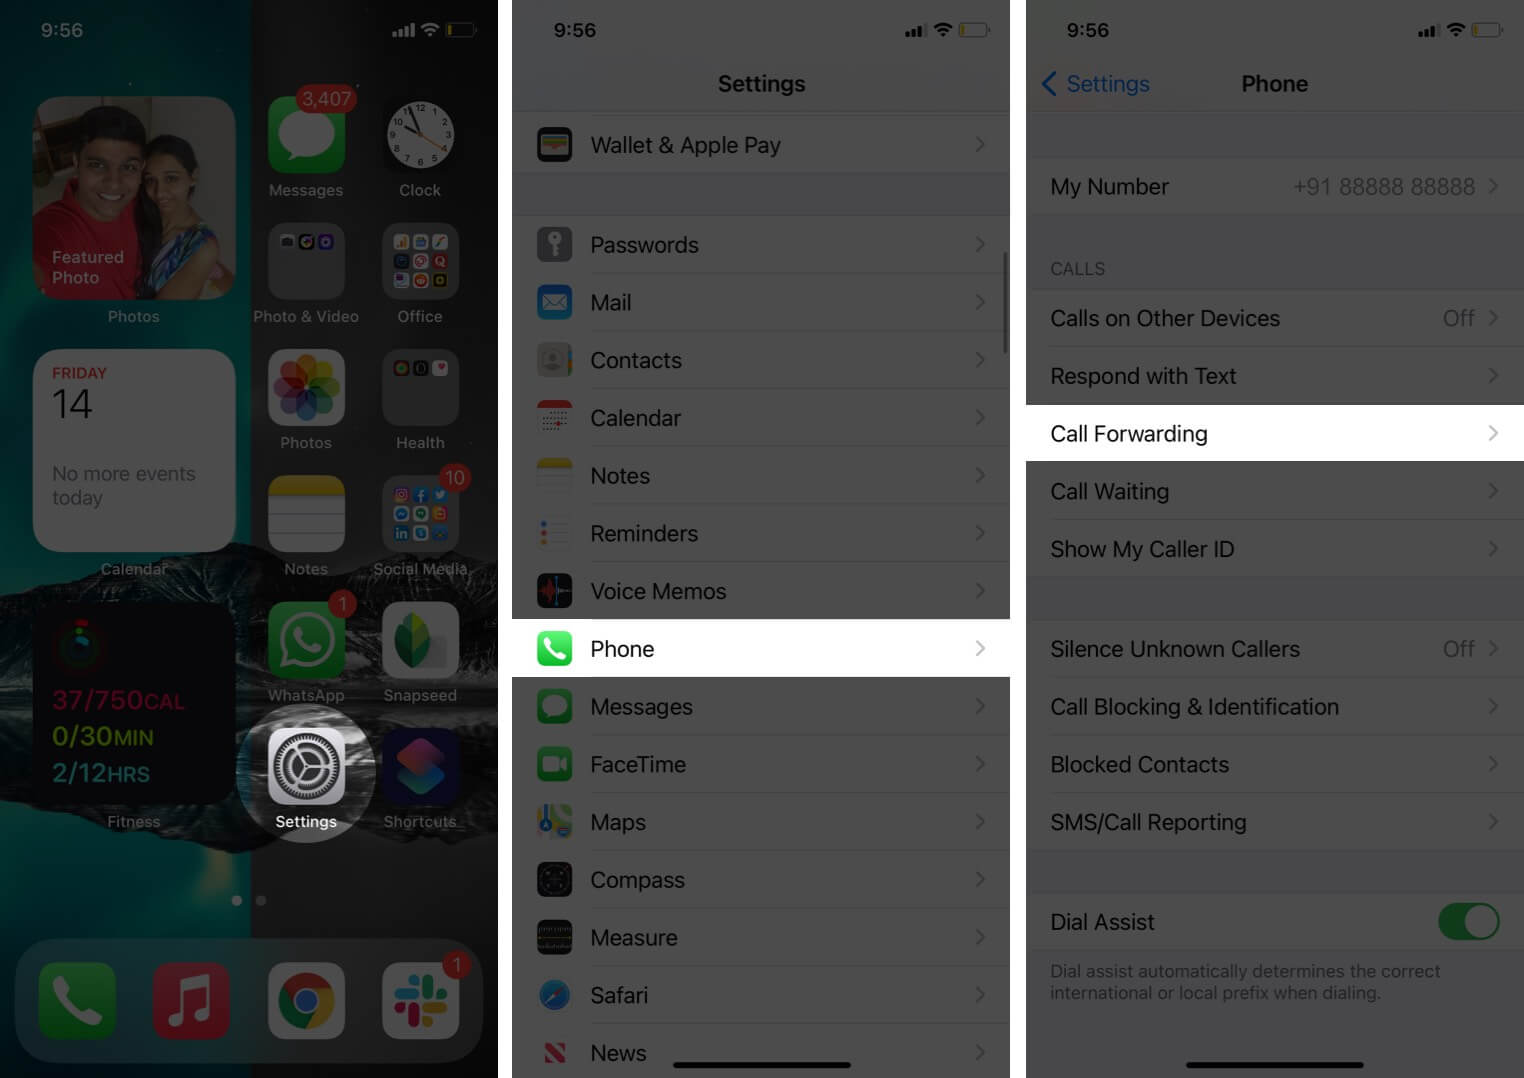 open settings tap on phone and select call forwarding on iphone